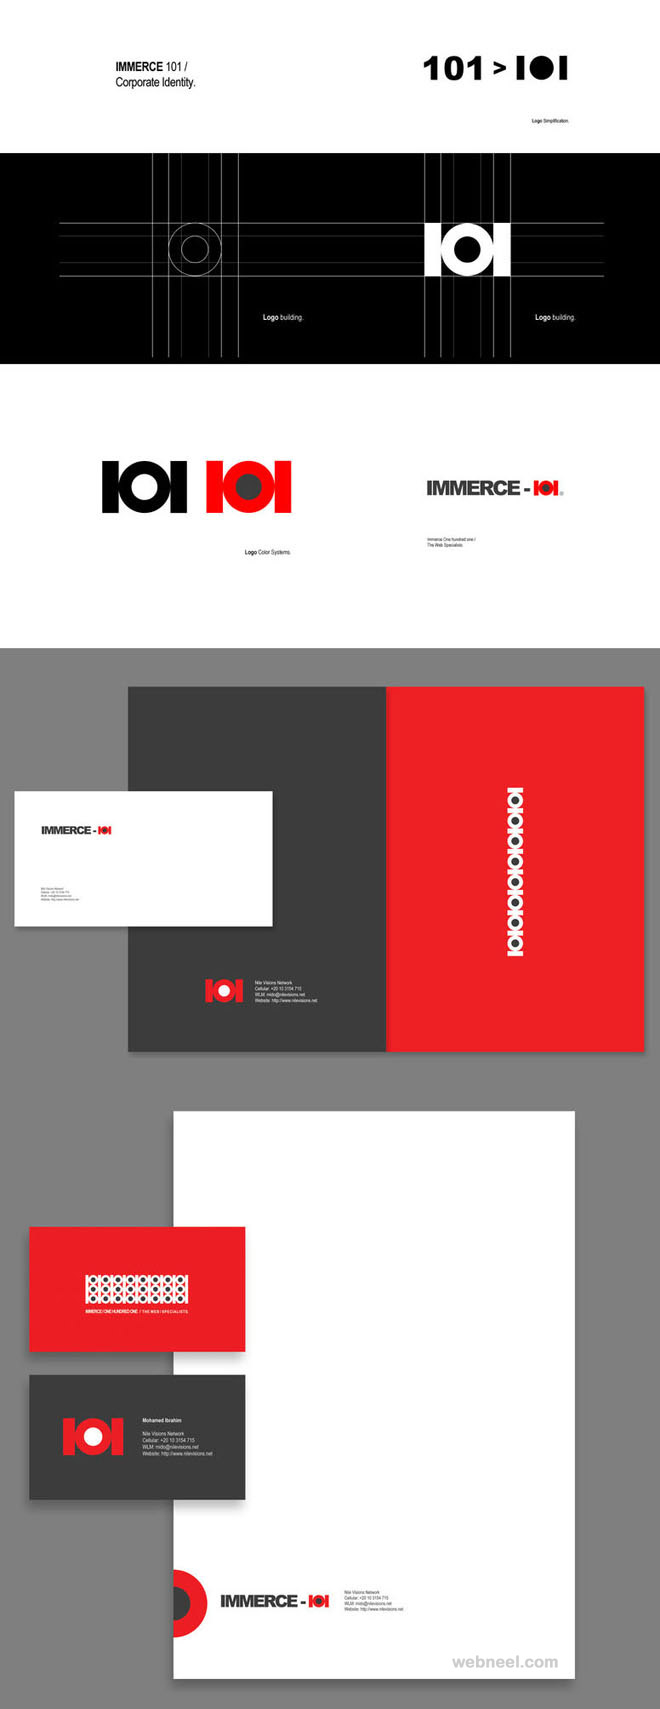 immerce branding identity design